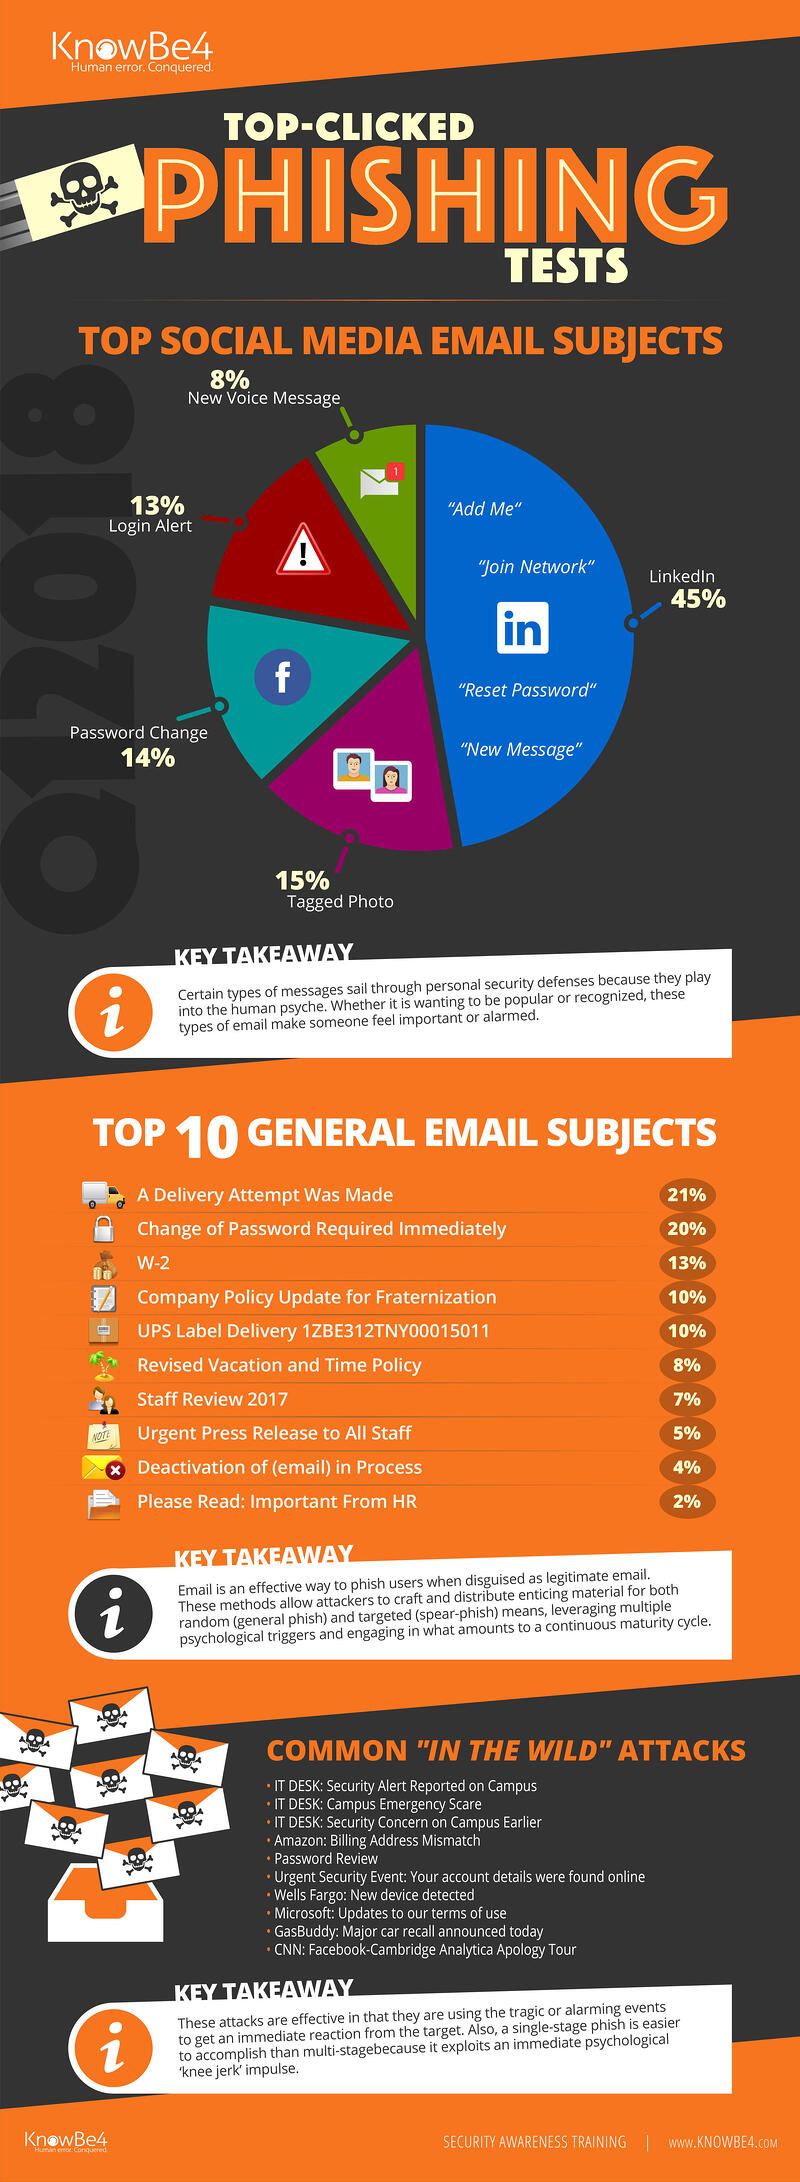 Q1 2018 Top Clicked Phishing Email Subjects Infographic